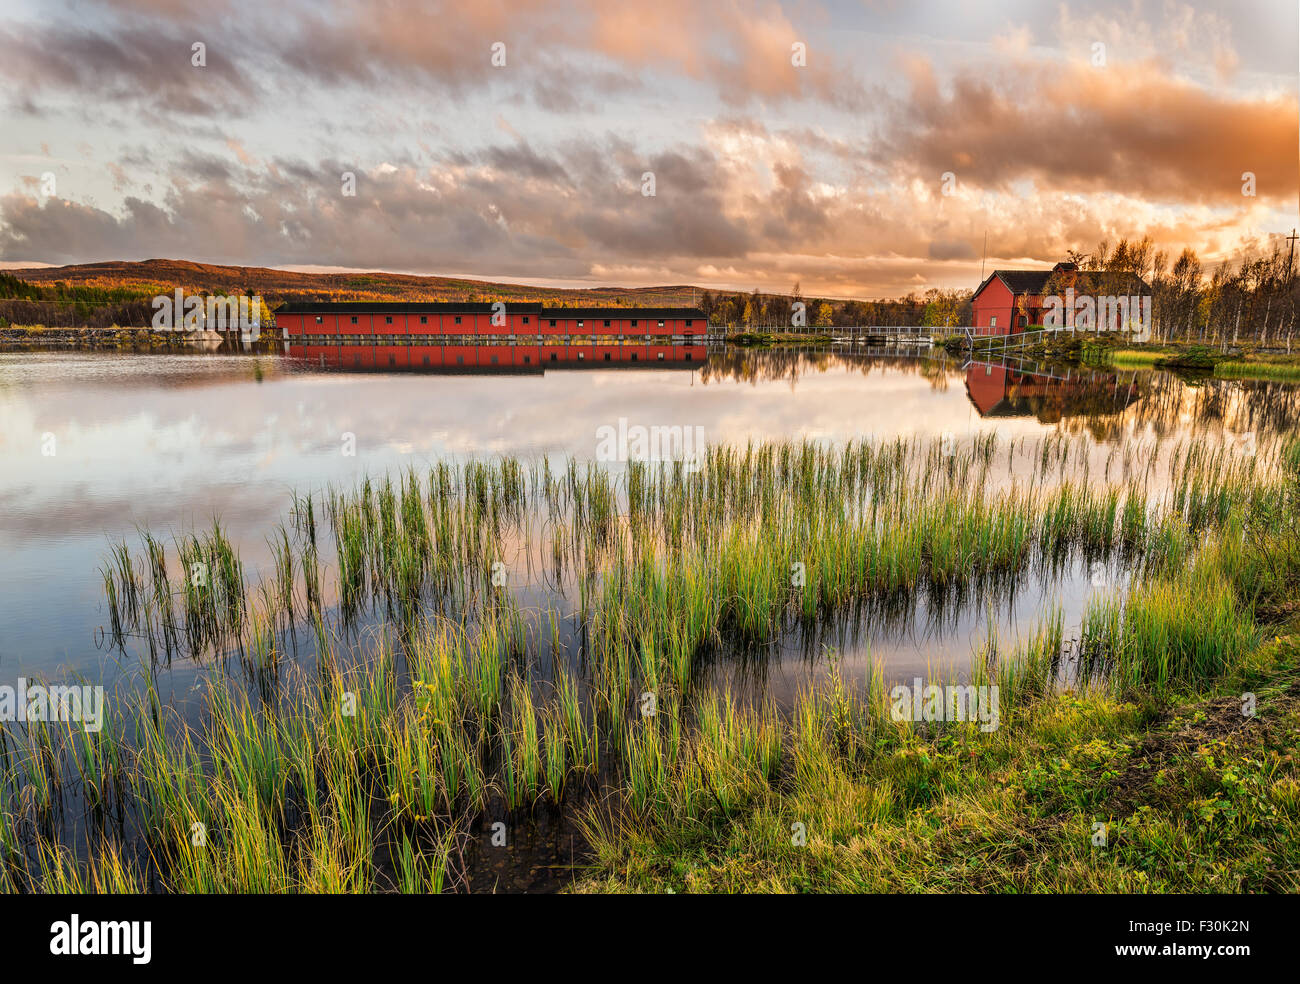 Iconic wooden bridge on Narsjoen lake in Hedmark county,  Norway at sunset - Stock Image